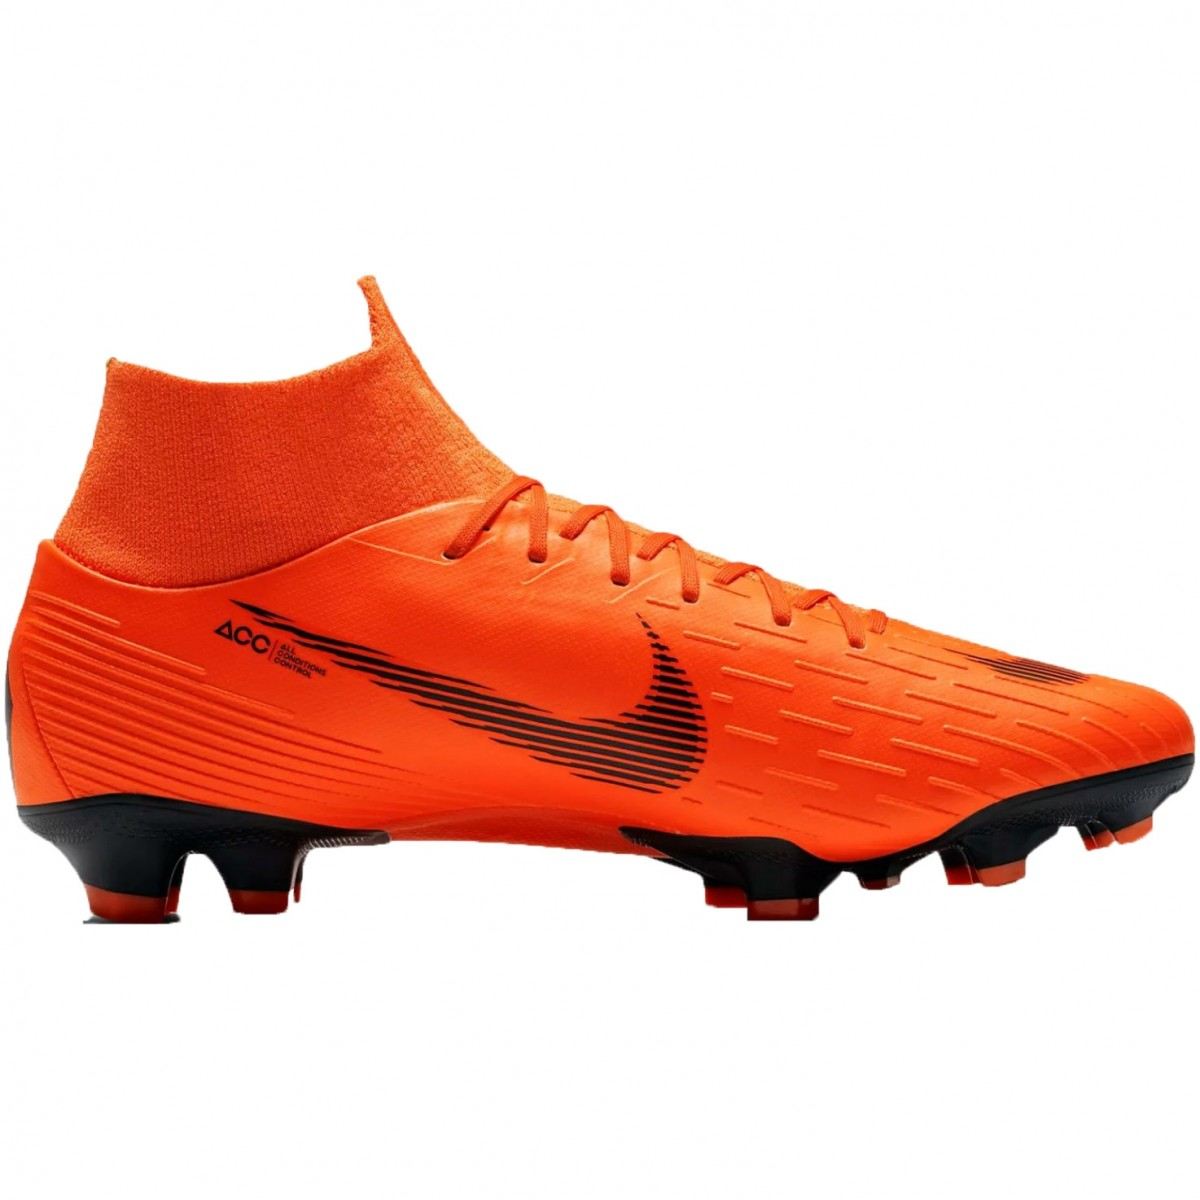 Nike Mercurial Superfly 6 Pro FG